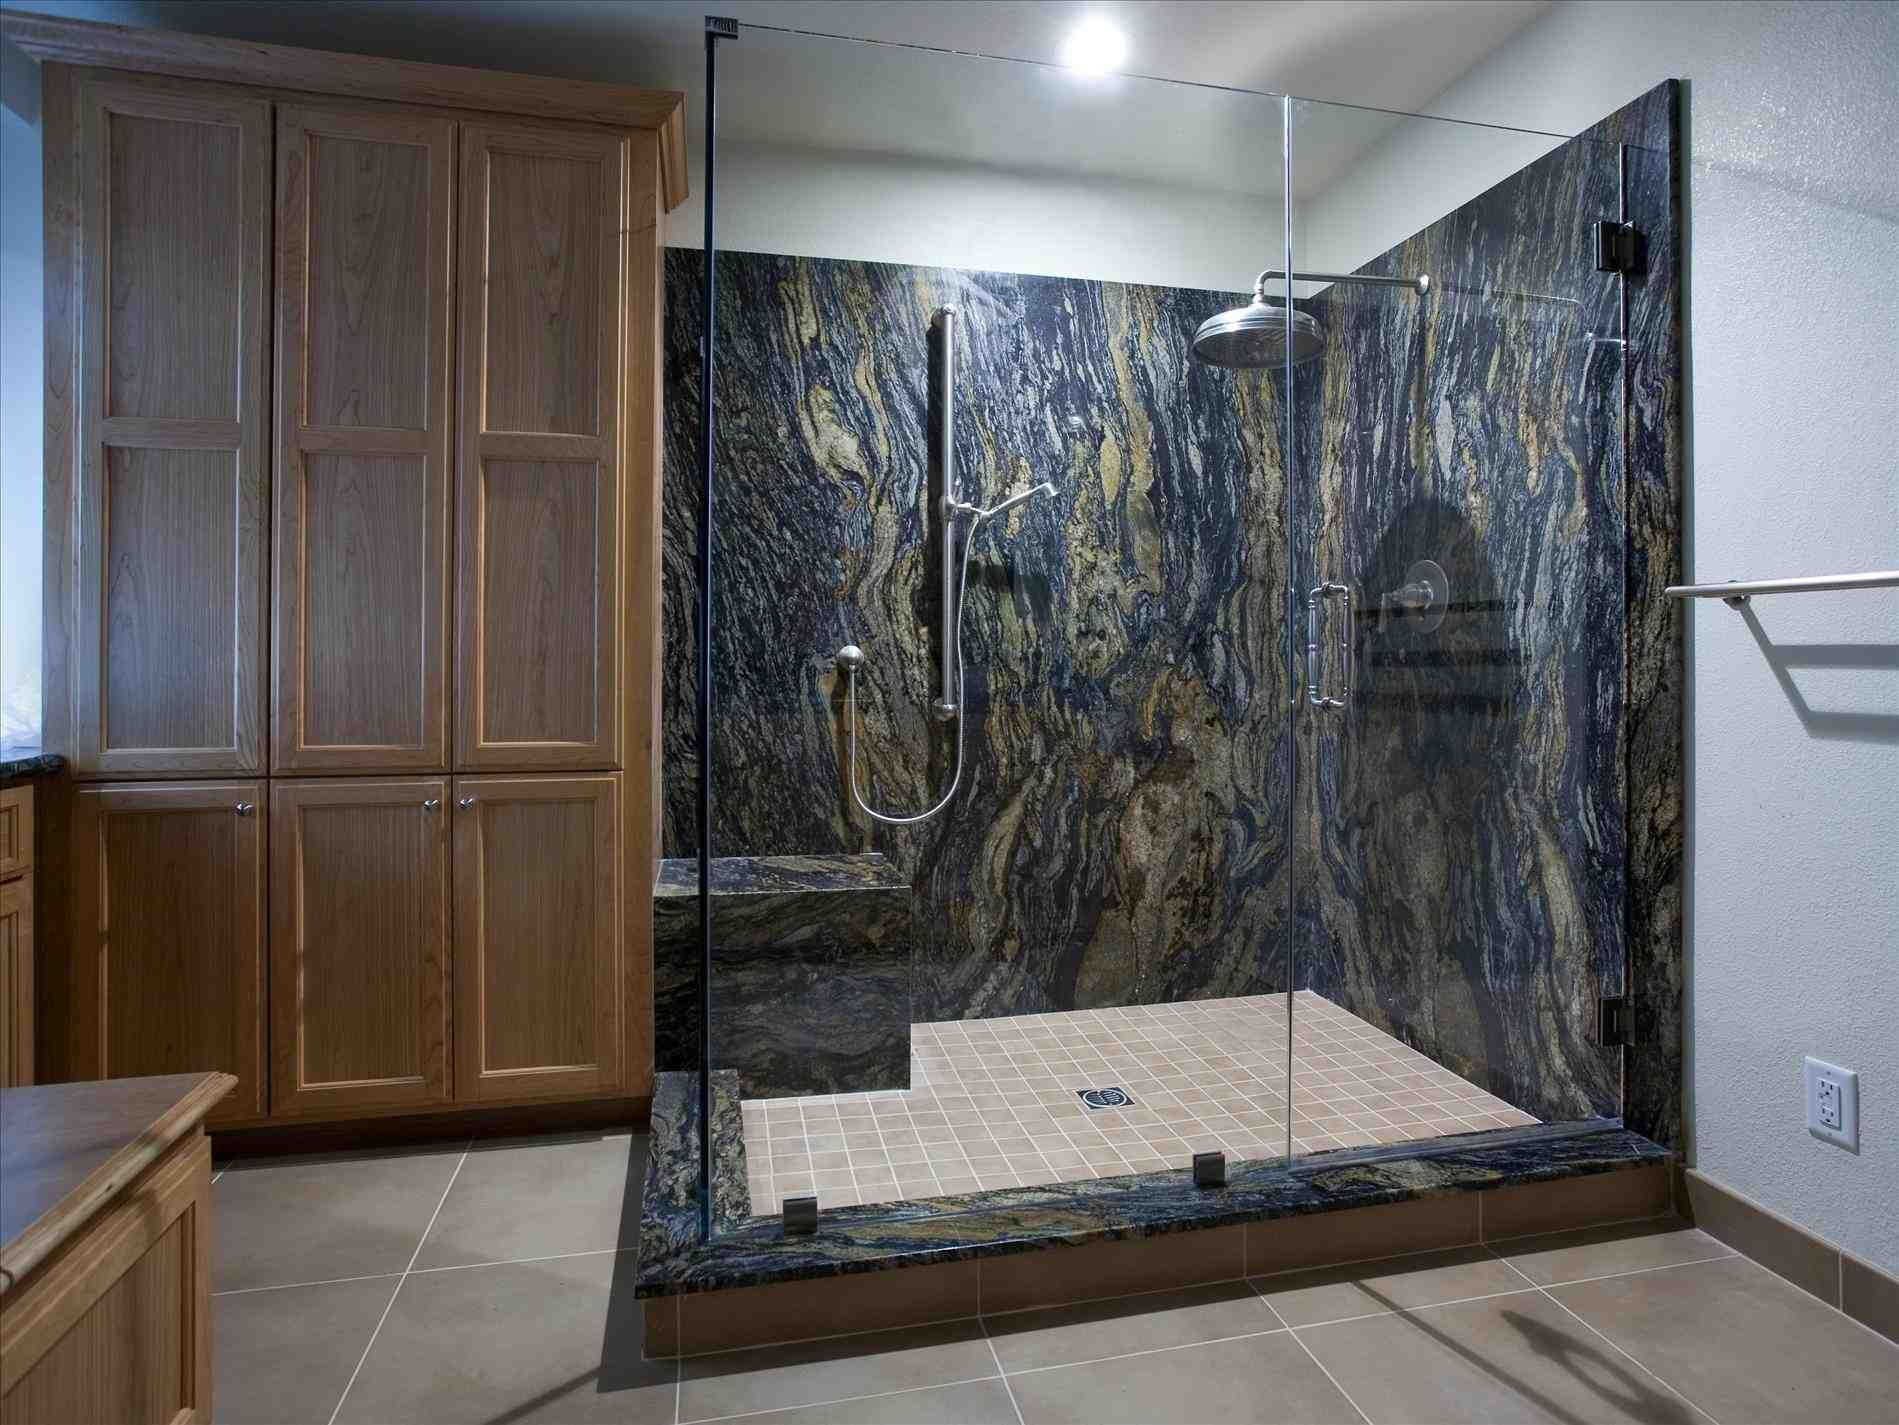 this master bathroom remodel budget bathroom remodeling on a